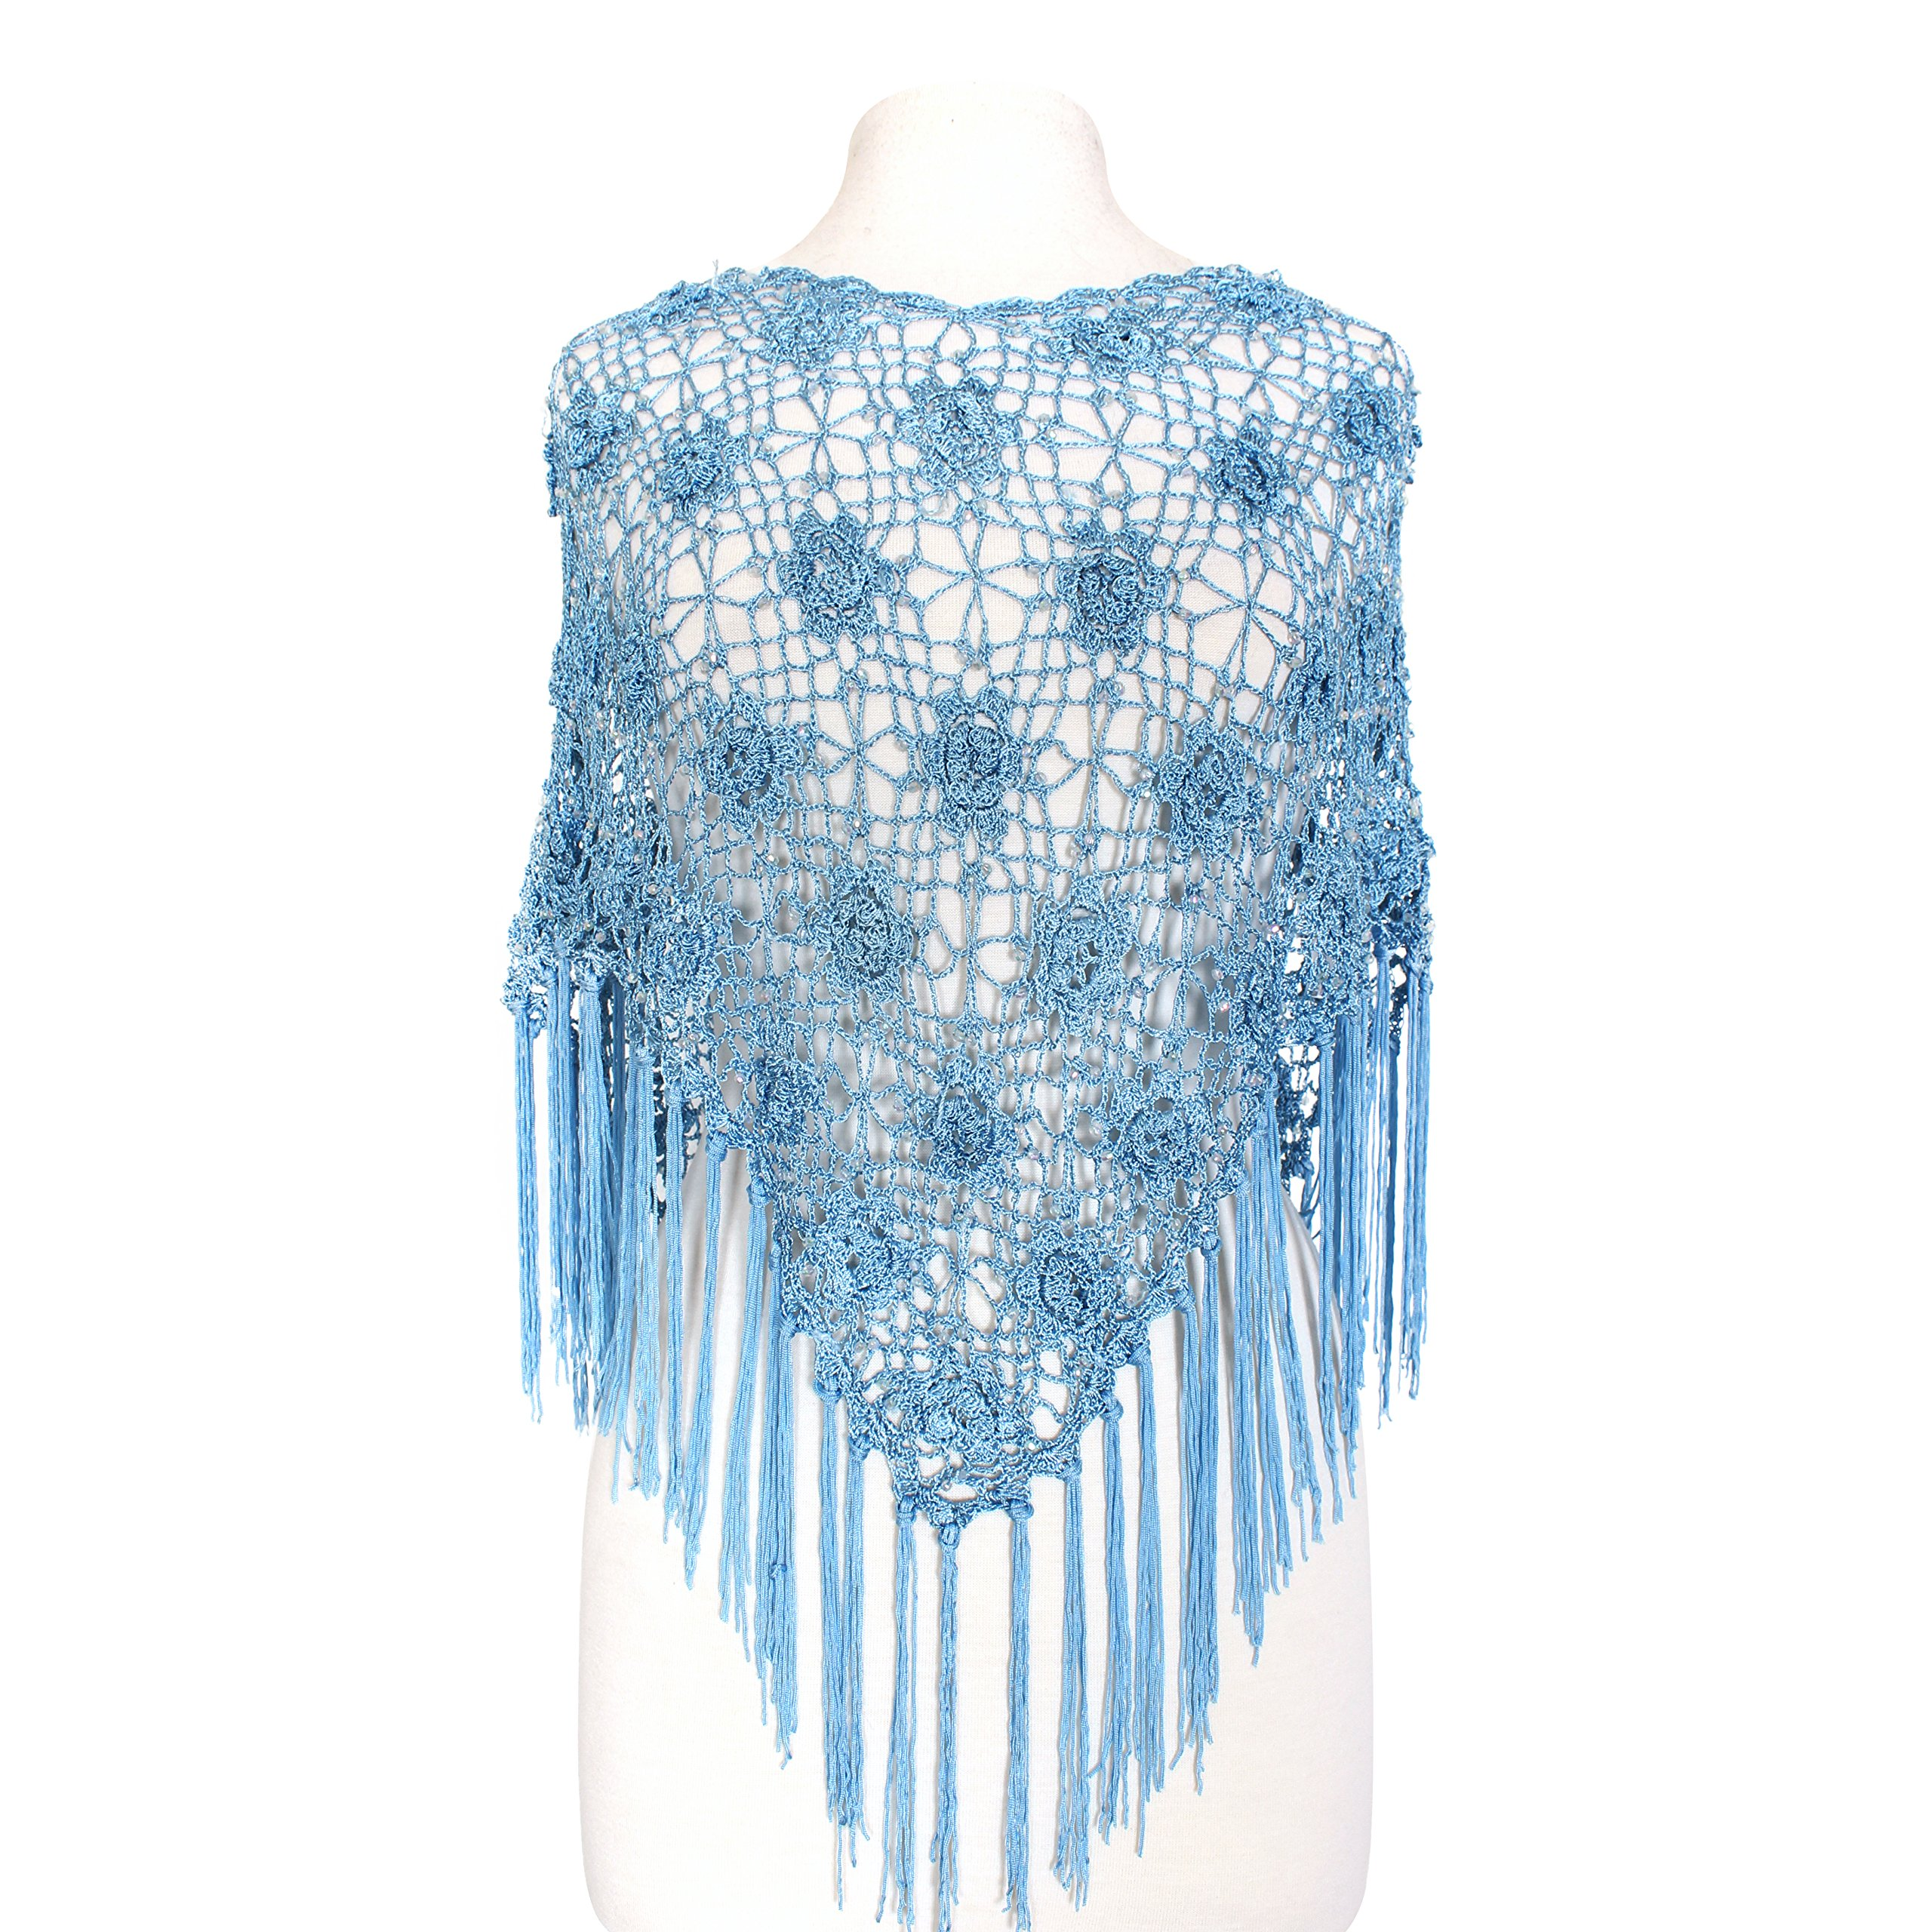 Feriamode 100% Handmade Flower Embroidered Net & Bead Poncho with Long Tassel (Light Blue)